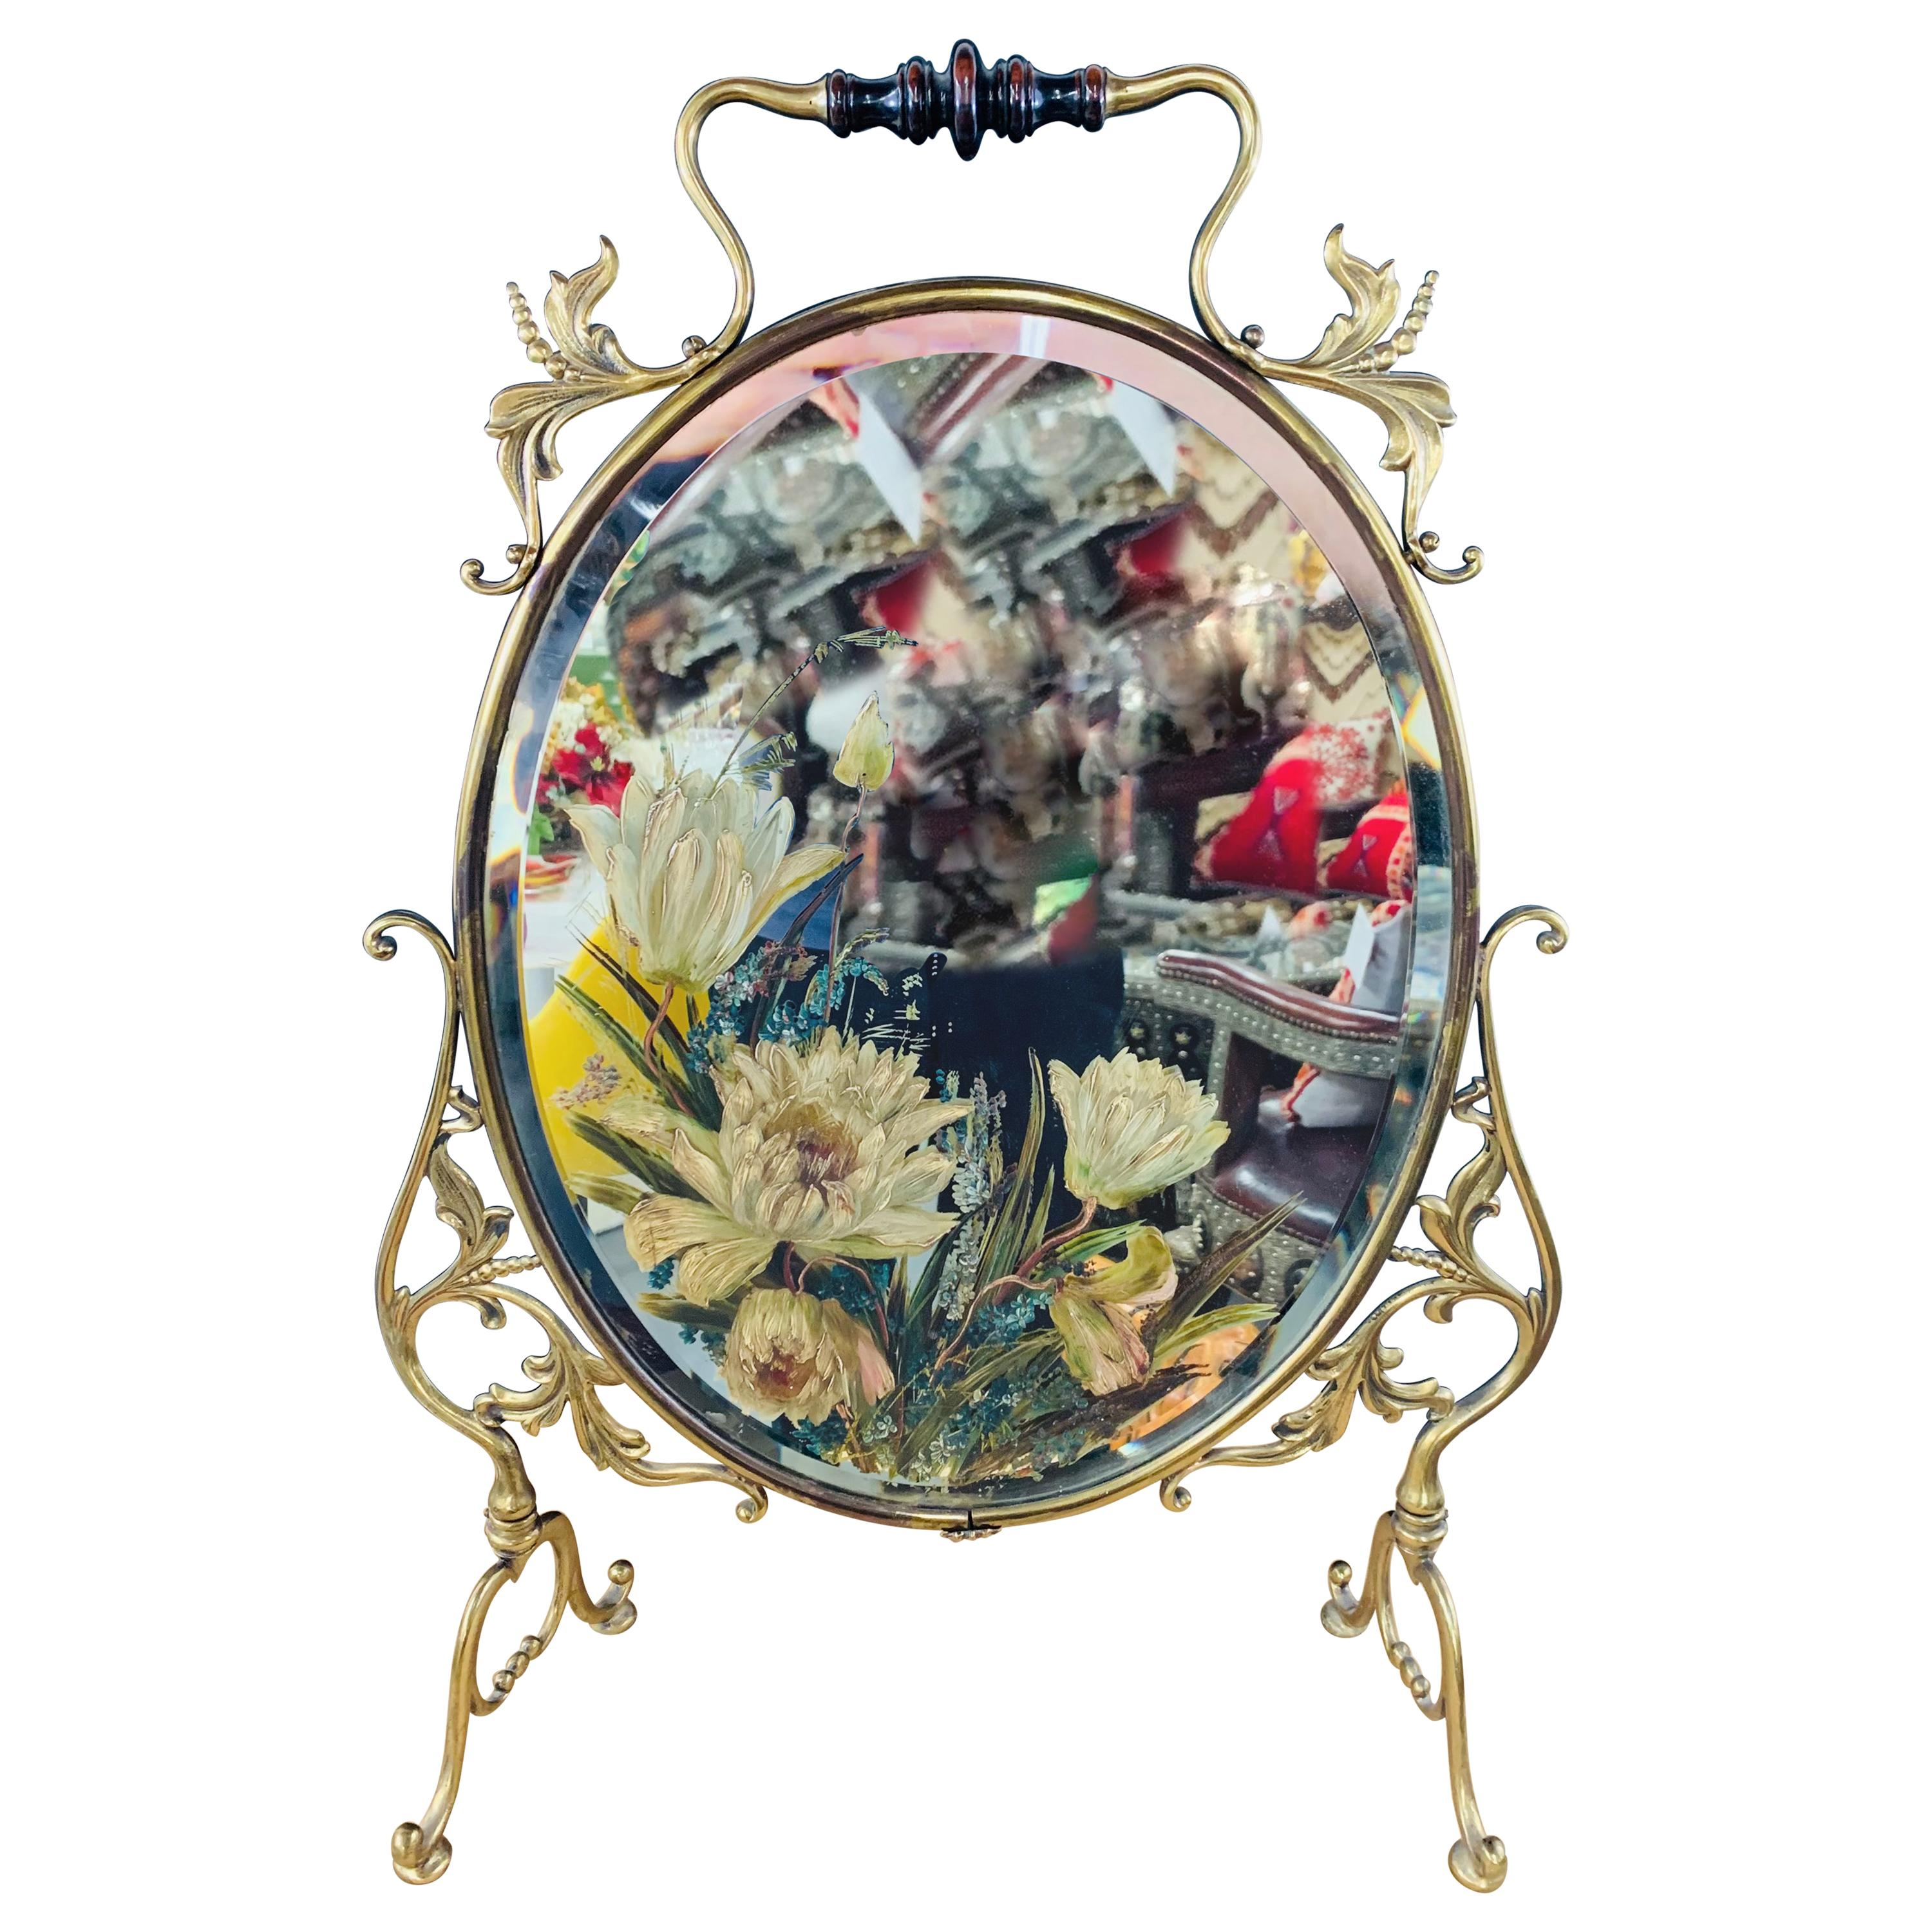 Hollywood Regency Brass Oval Table or Floor Mirror with Floral Etching